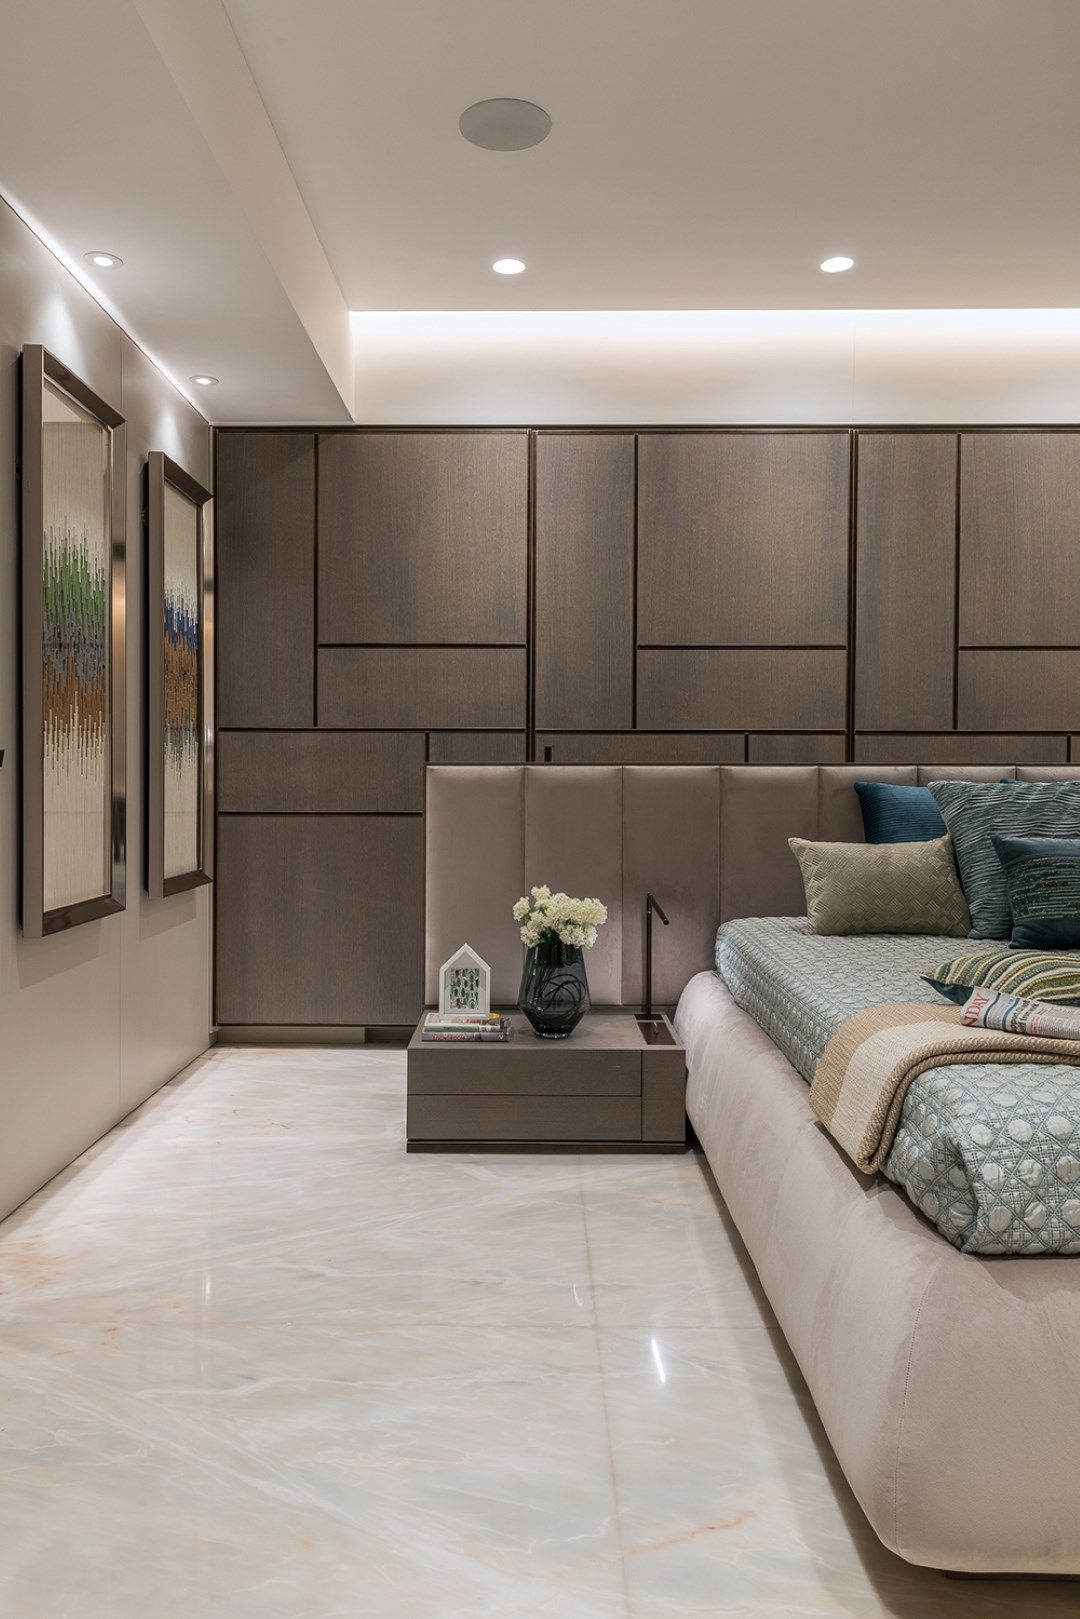 Simple yet luxurious home interiors also kumar interior  specialized in residential  cinteriors rh pinterest